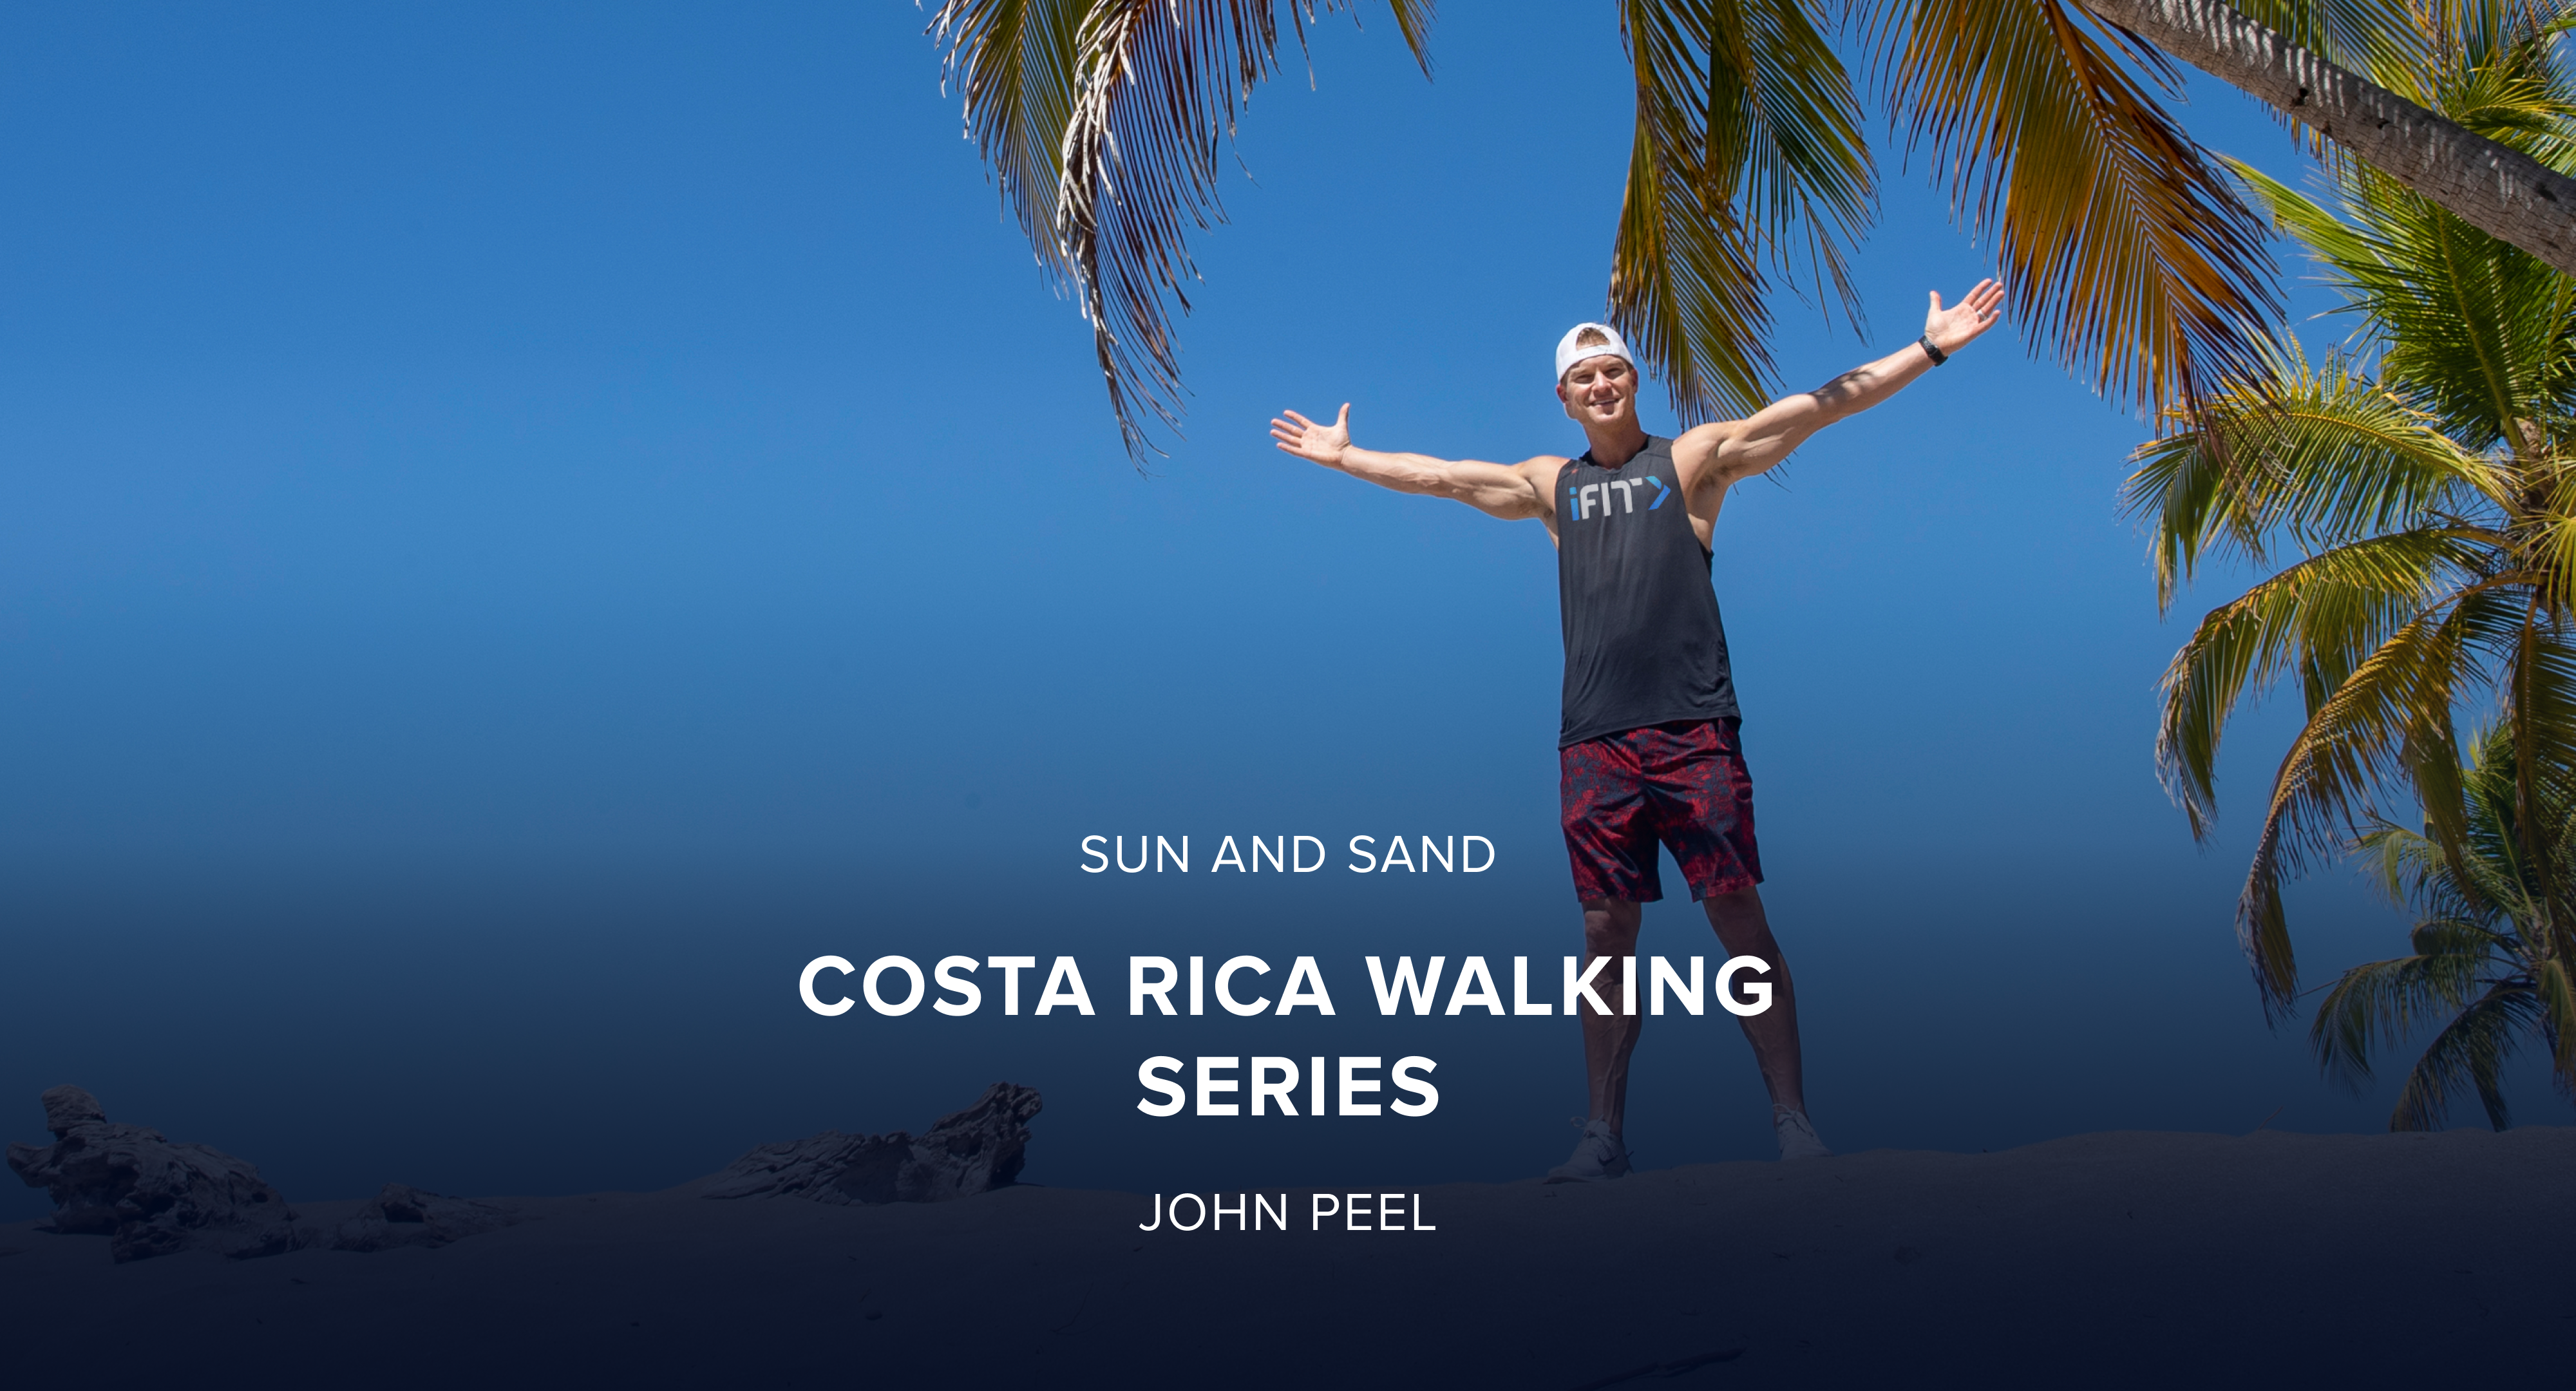 iFit March Sun and Sand Treadmill and Elliptical Challenge: Costa Rica Walking Workout Series with Trainer John Peel